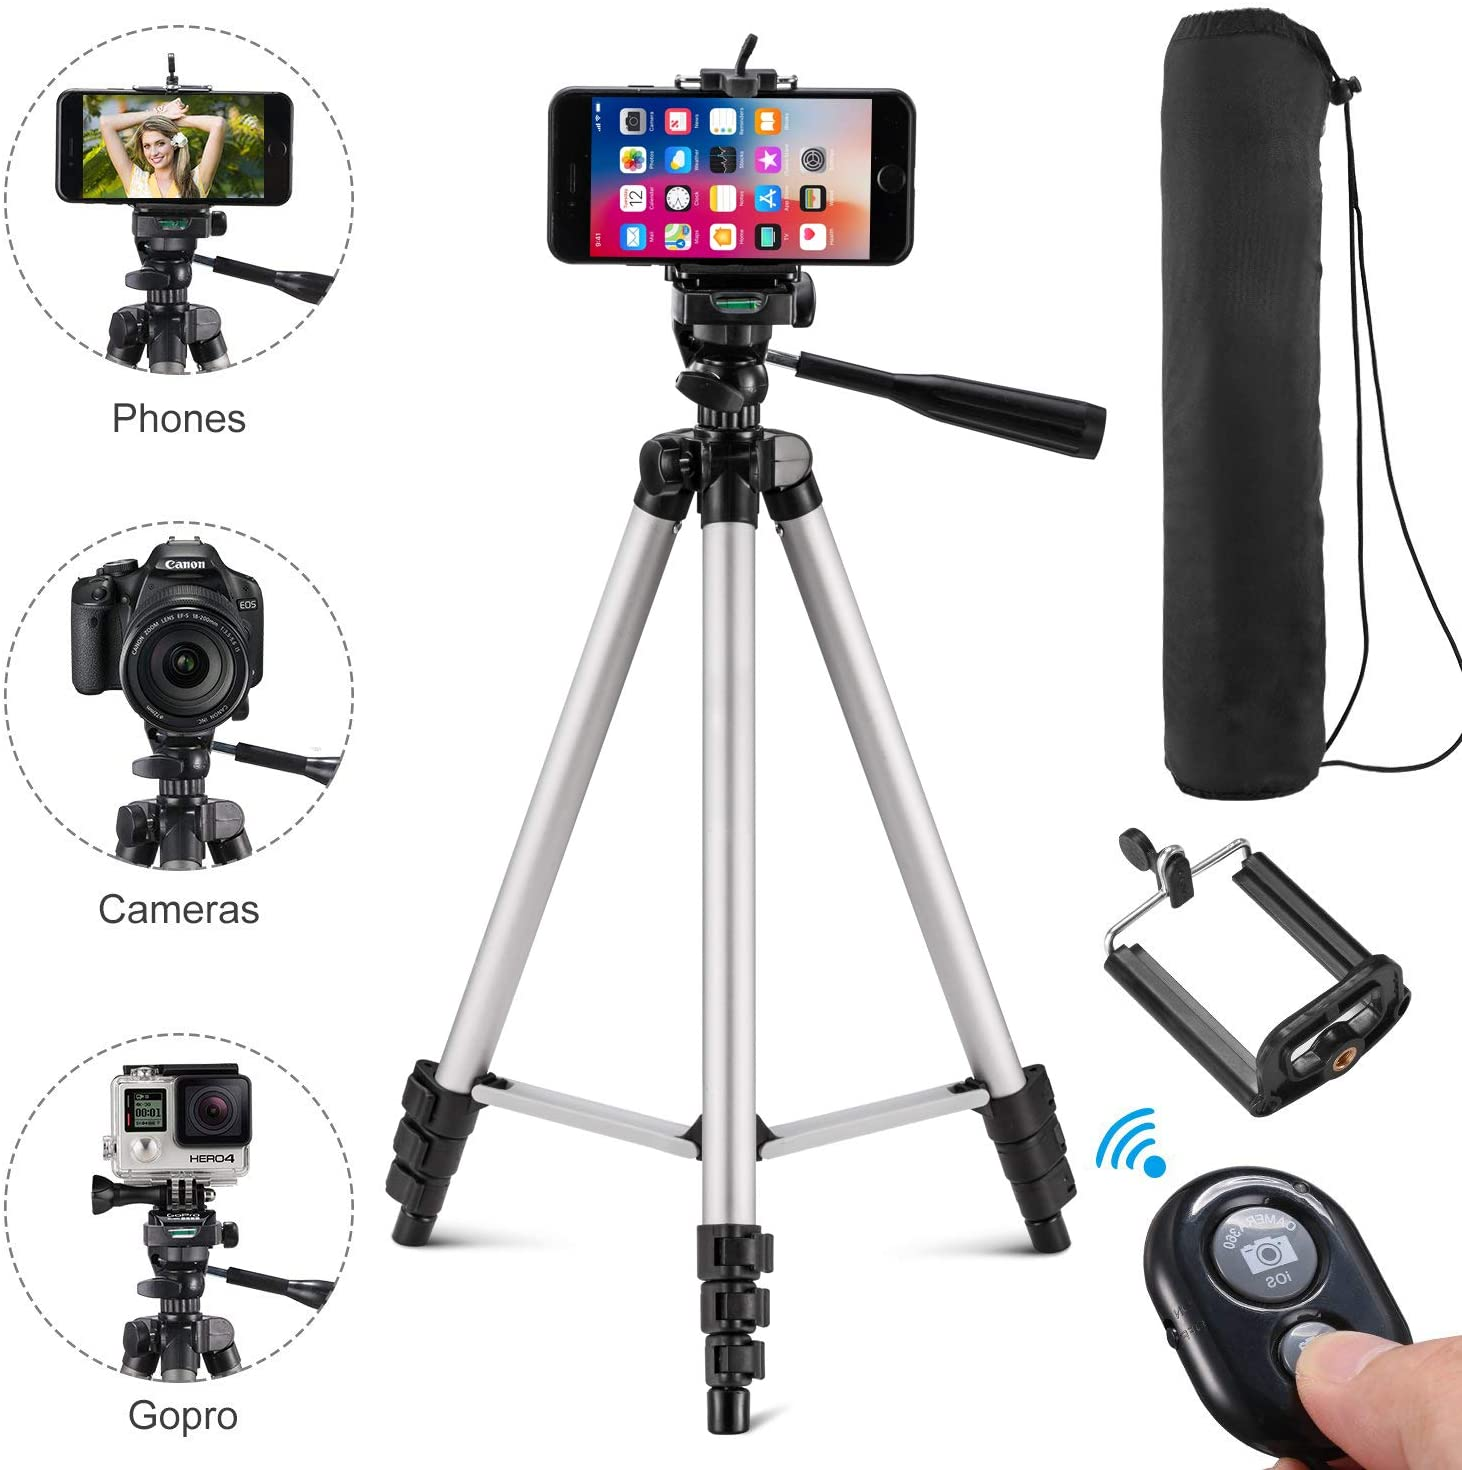 Kwithan Tripod, 50-inch Video Tripod for Cellphone and Camera, Universal Tripod with Wireless Remote & Cellphone Holder Mount